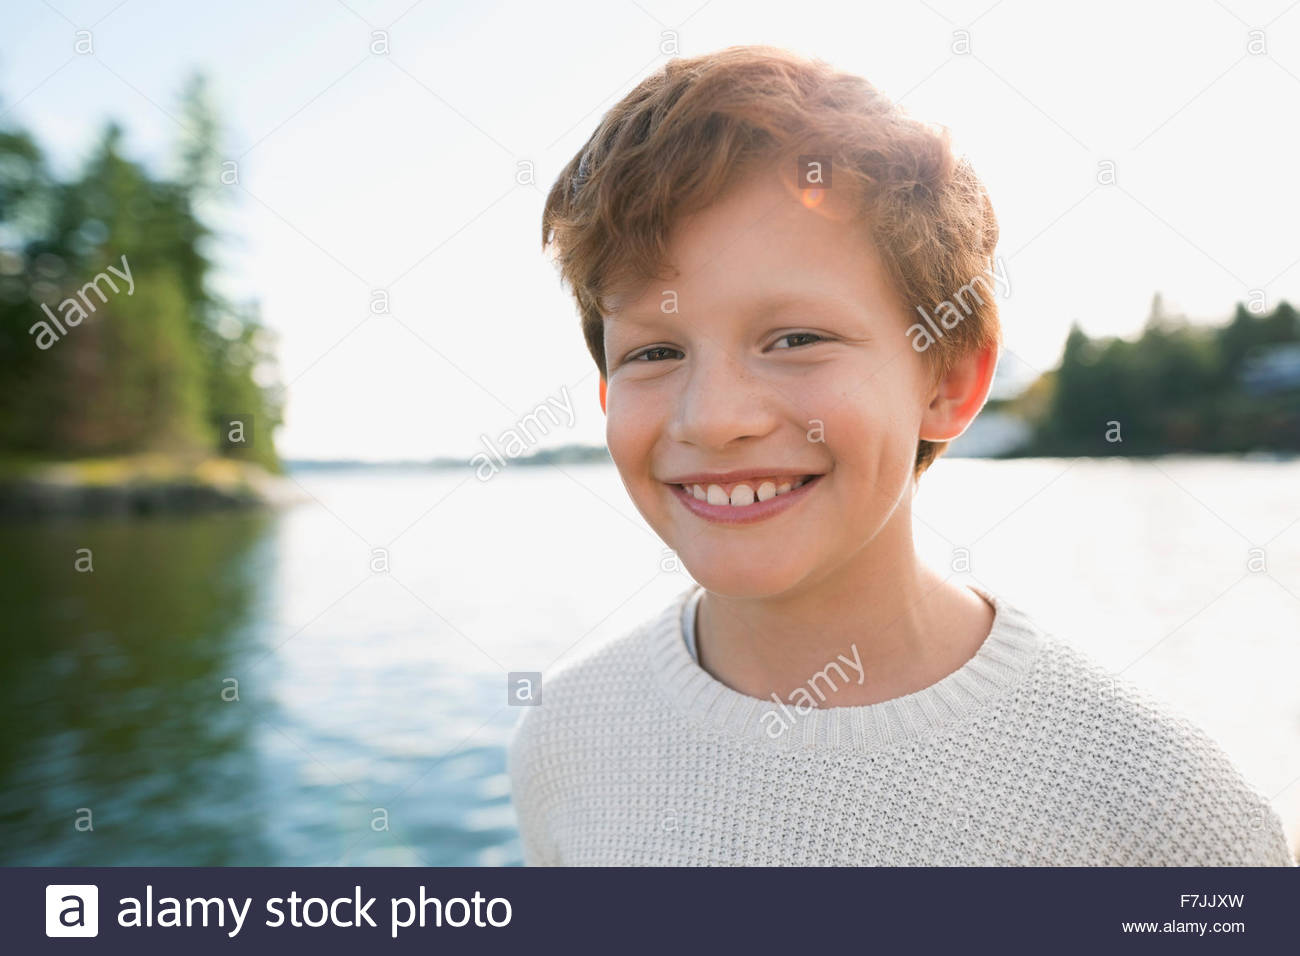 Portrait smiling boy with red hair at lakeside - Stock Image